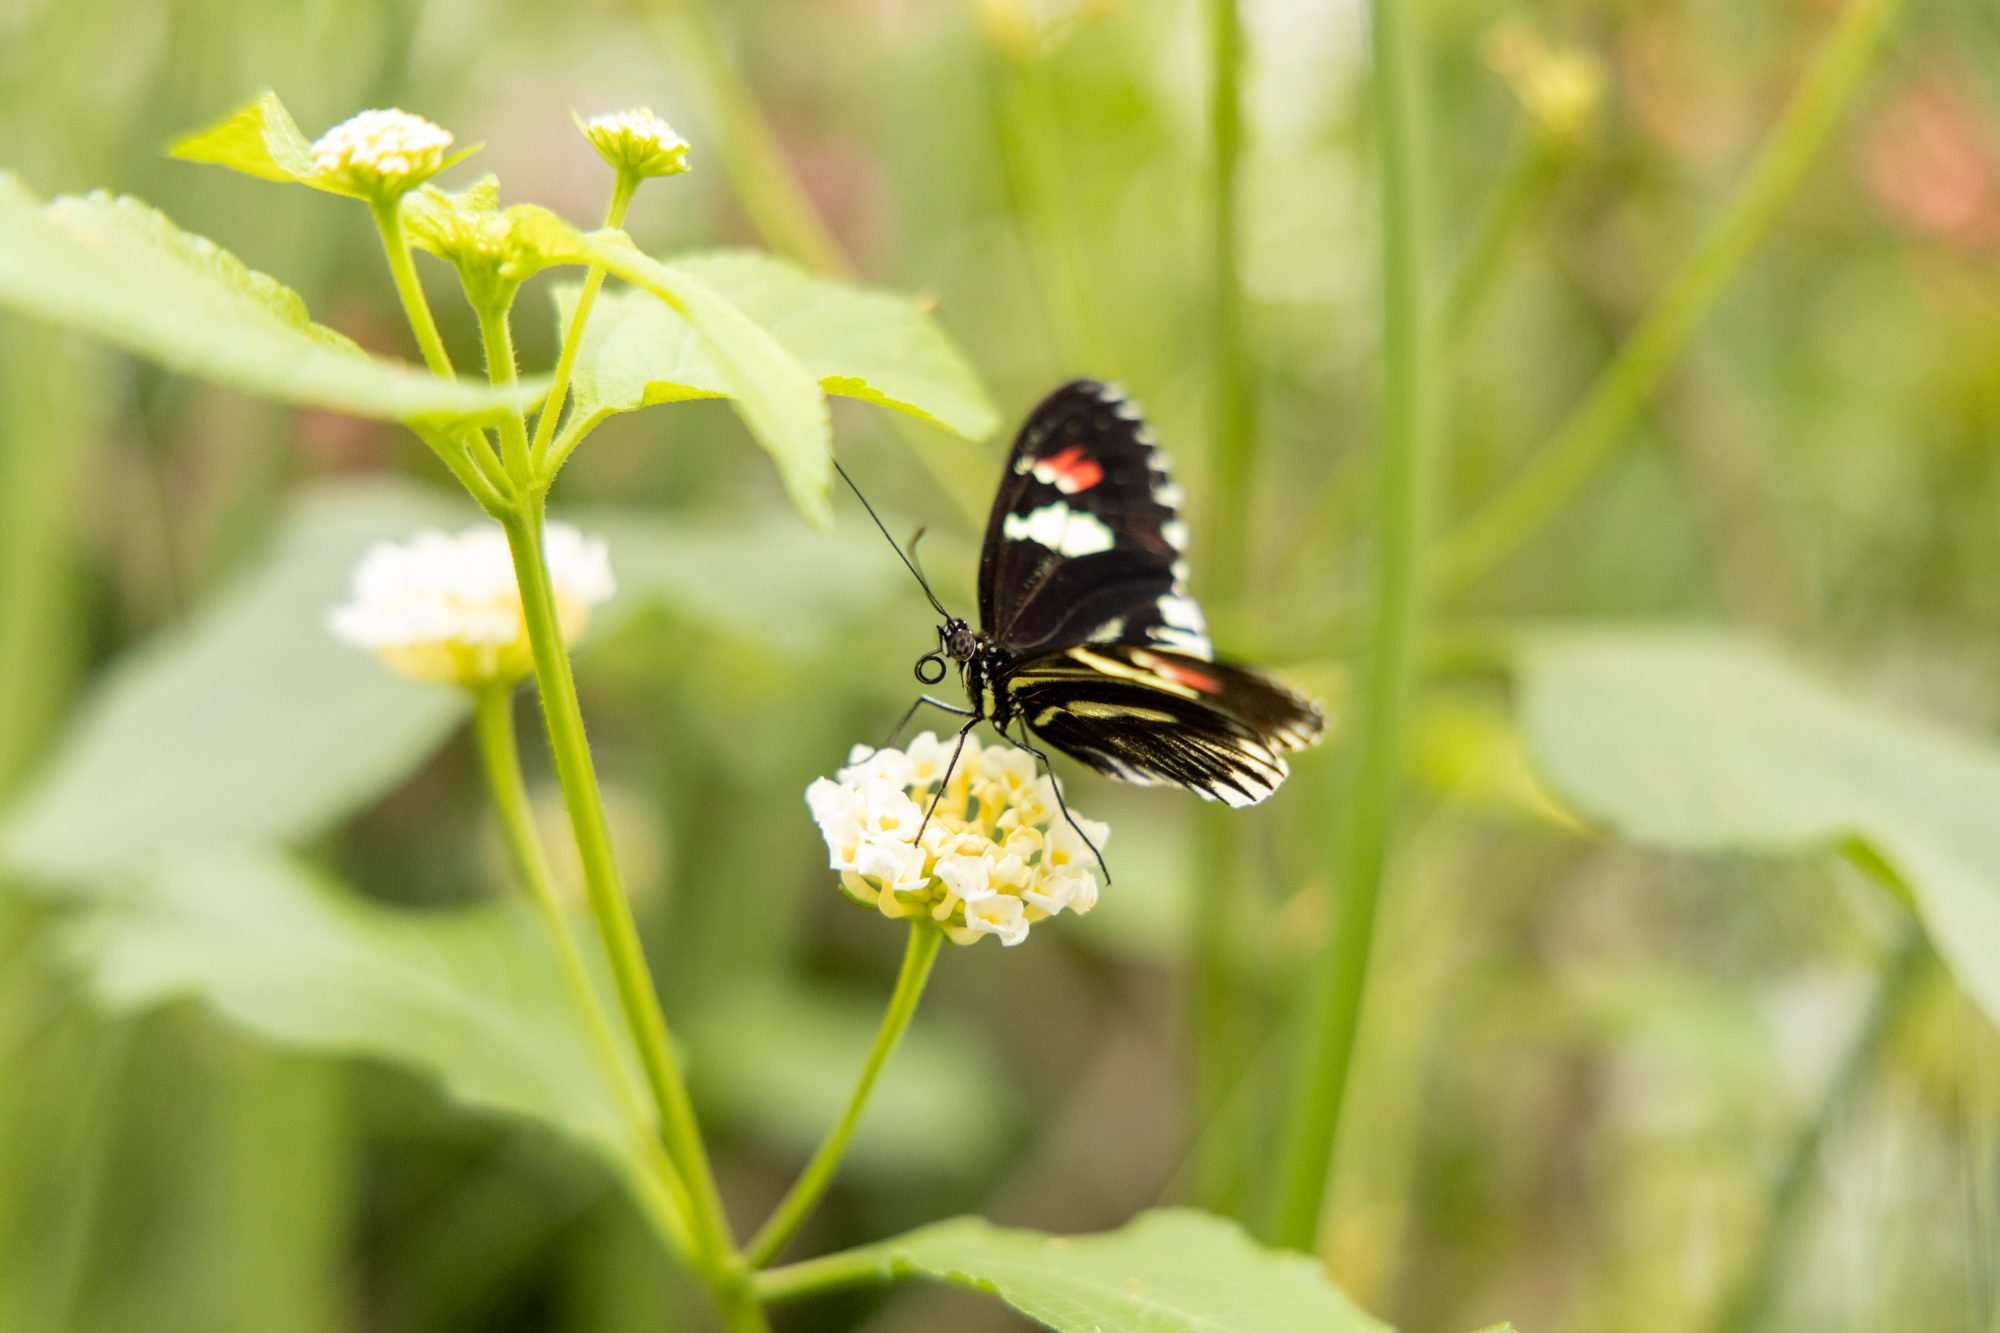 A black butterfly against a lush green background.